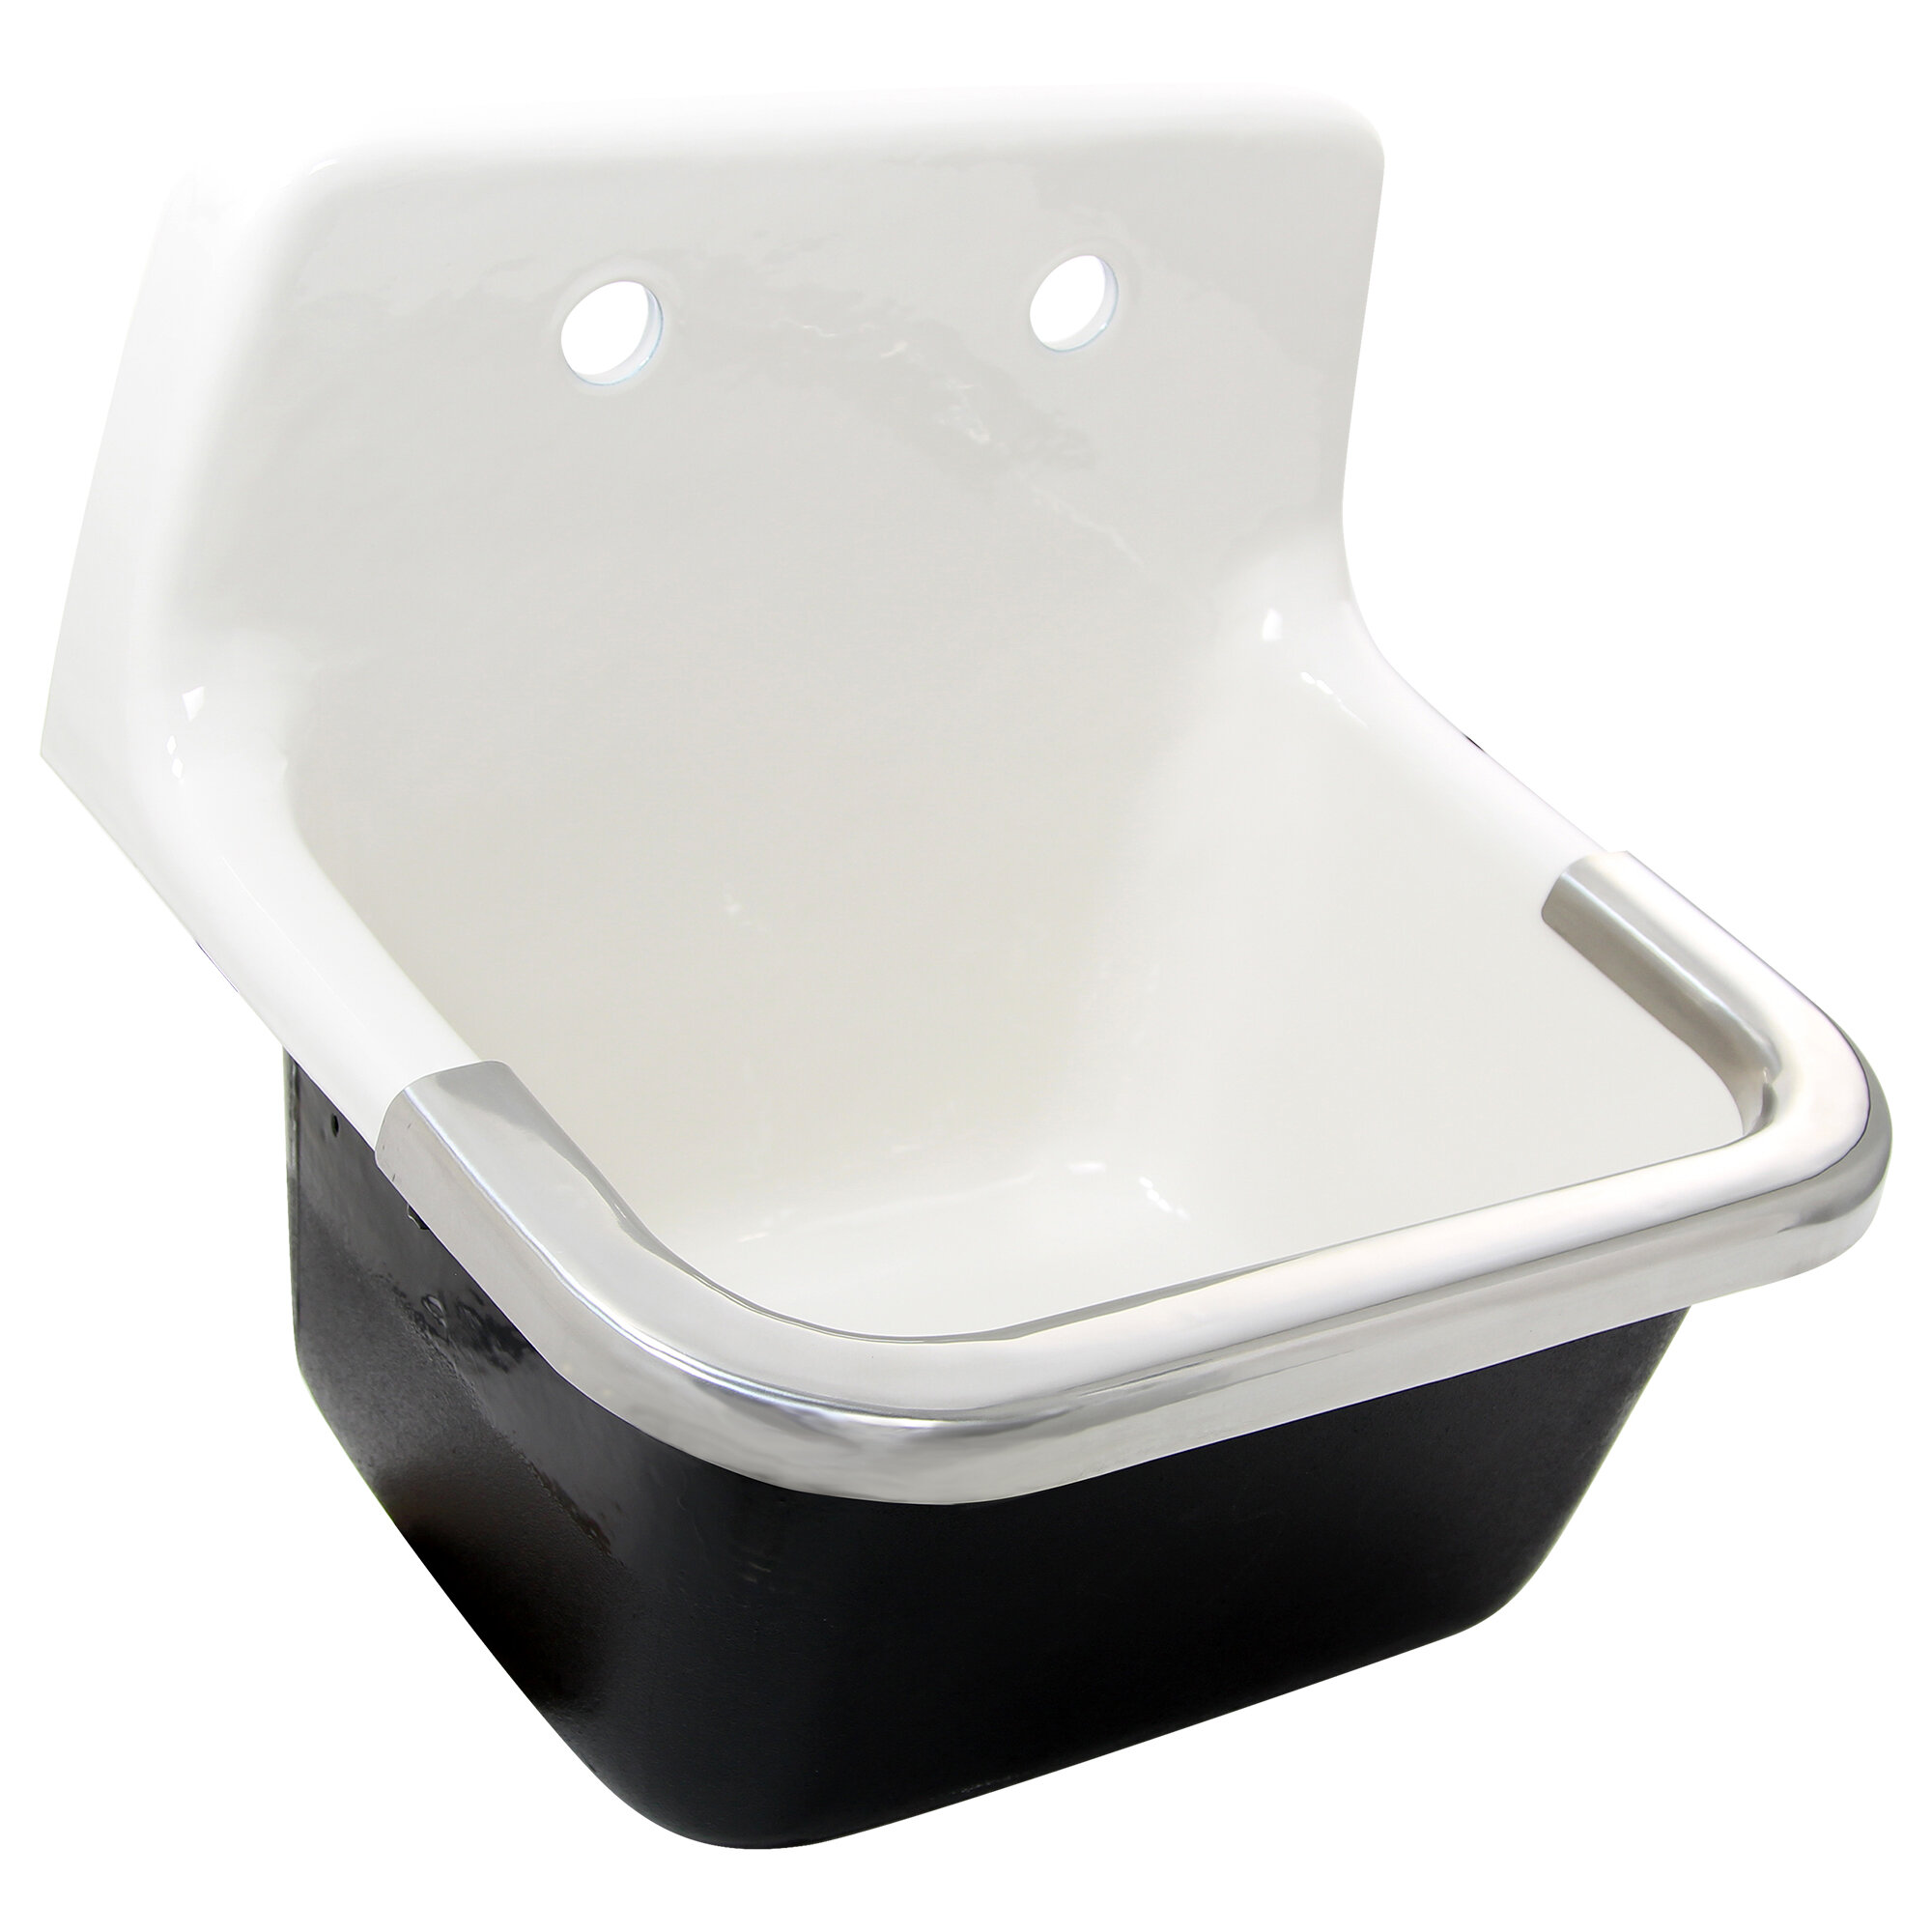 Wfac051620181 22 X 18 Wall Mounted Service Sink